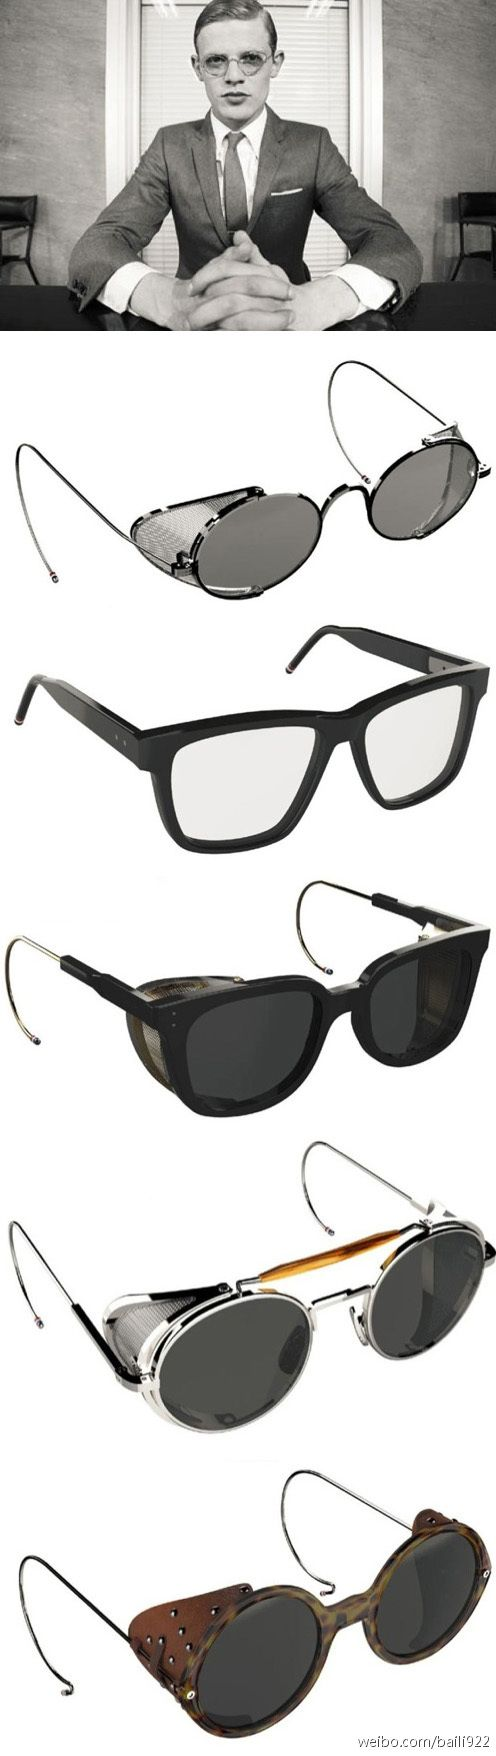 Classics - Thom Browne x Dita Eyewear Fall 2011 Collection #Dita #ThomBrowne #GetTheLook